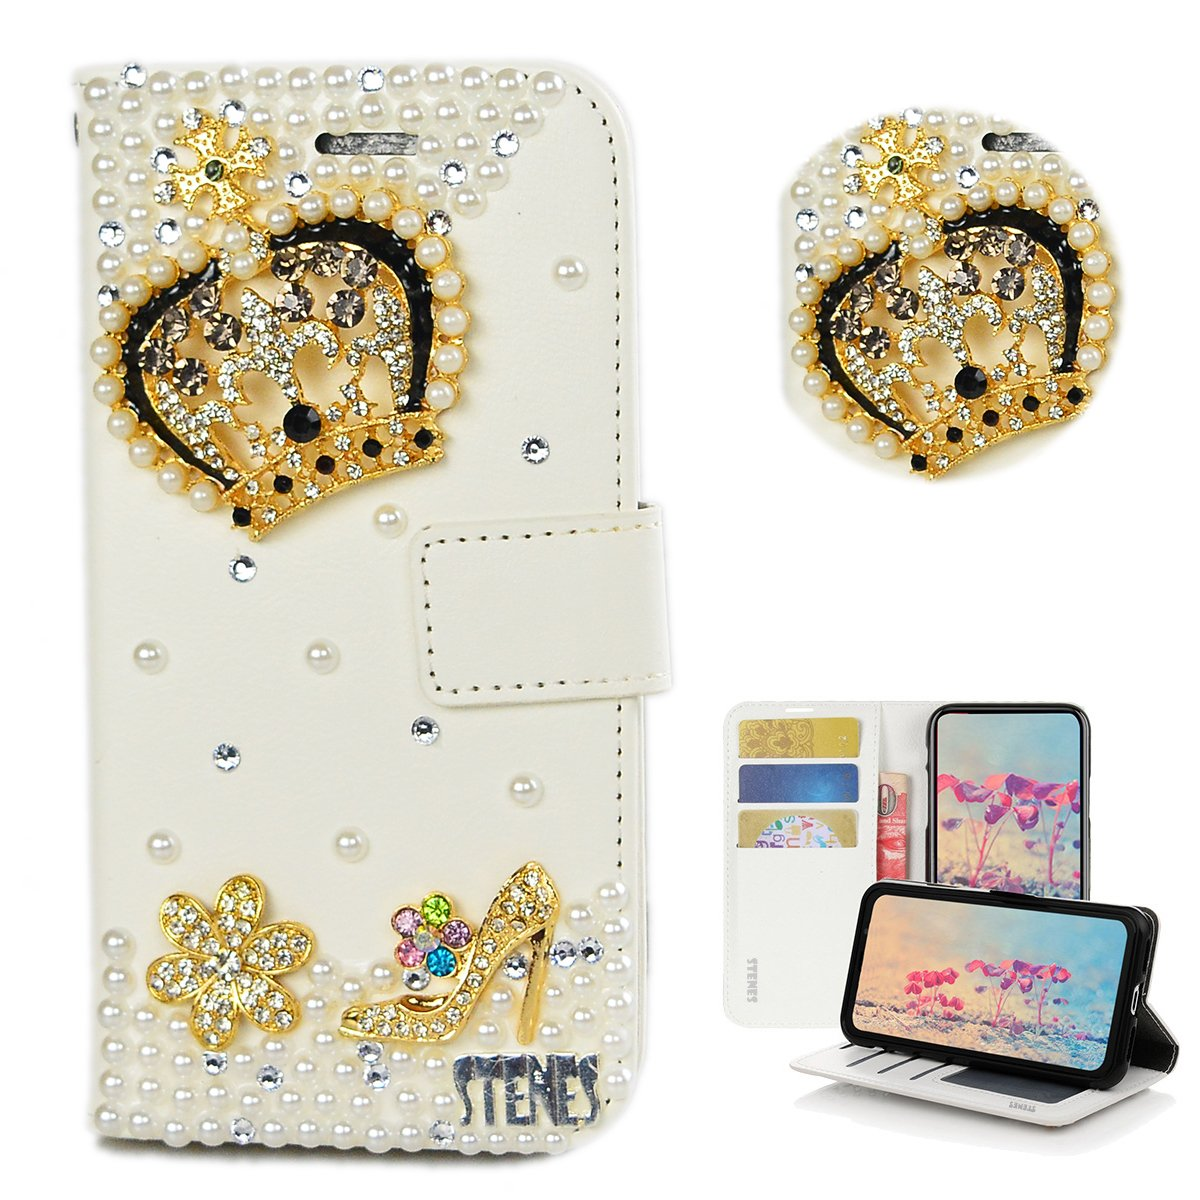 STENES Galaxy S9 Plus Case - Stylish - 3D Handmade Bling Crystal Crown Girls High Heel Flowers Design Wallet Credit Card Slots Fold Stand Leather Cover for Samsung Galaxy S9 Plus - Gold